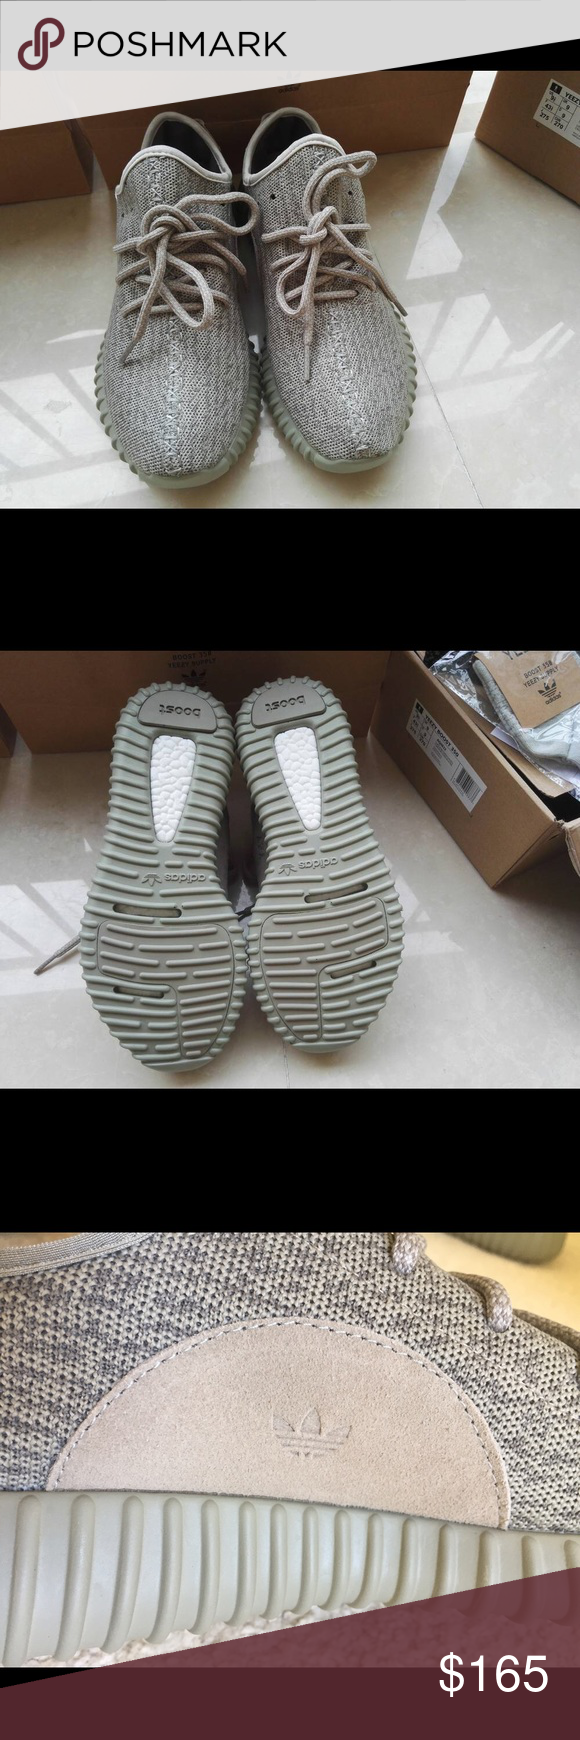 9aa44dce24665d New Adidas Yeezy Boost 350 Moonrock Women Size 6 Up for sale brand New Adidas  Yeezy